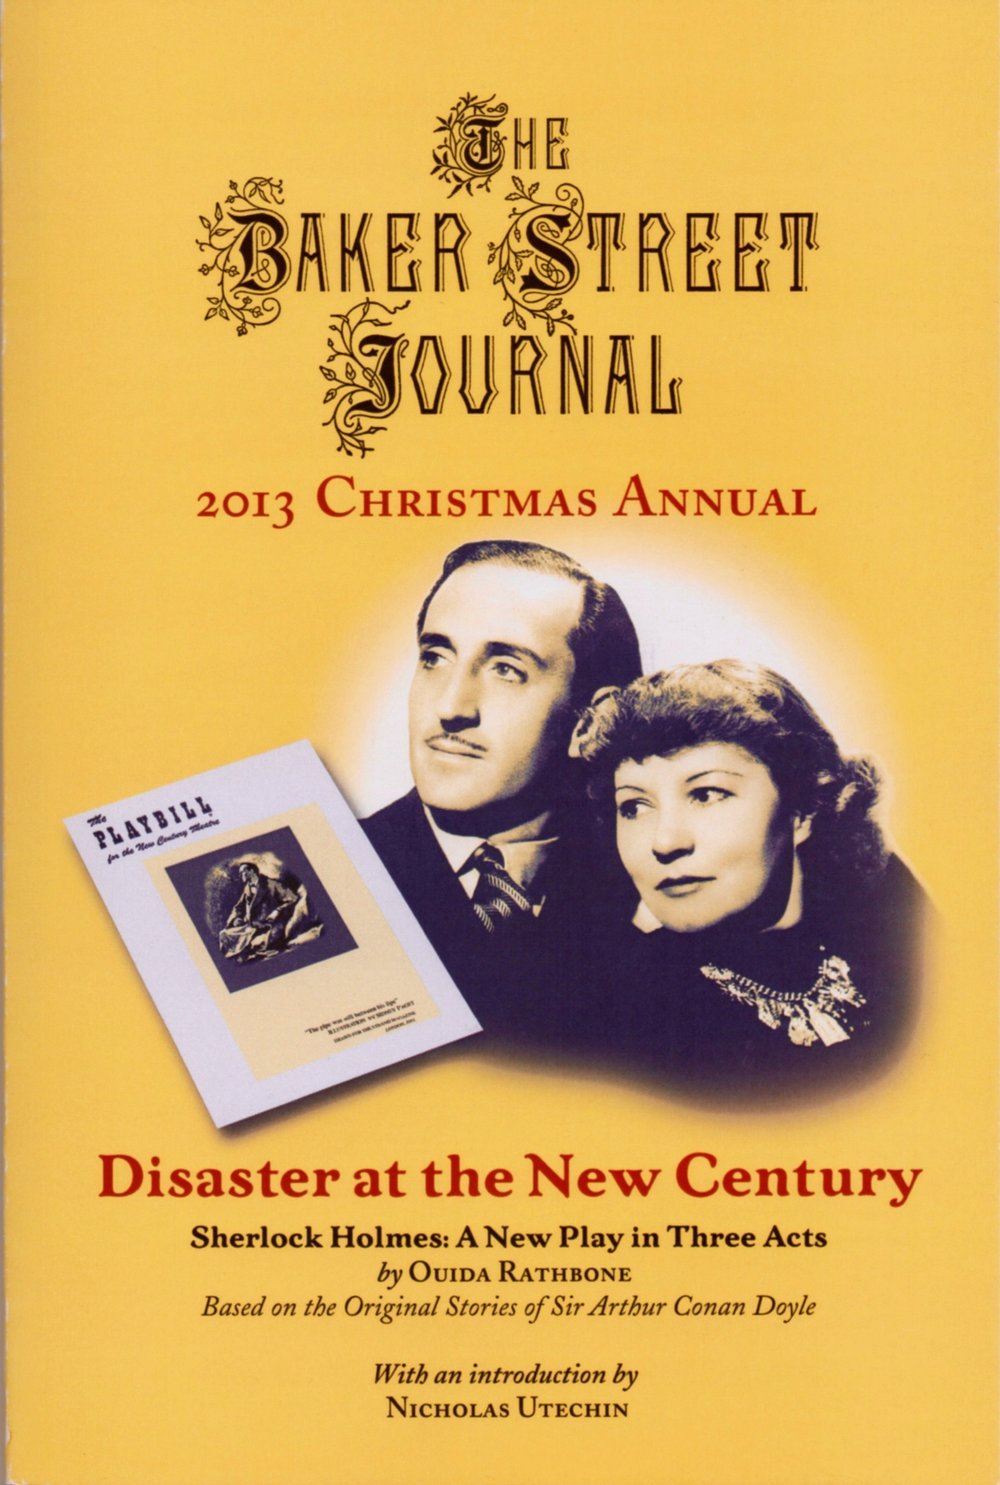 The Rathbone play was published by  The Baker Street Journal  as its 2013 Christmas Annual, with an excellent introduction by Nick Utechin.